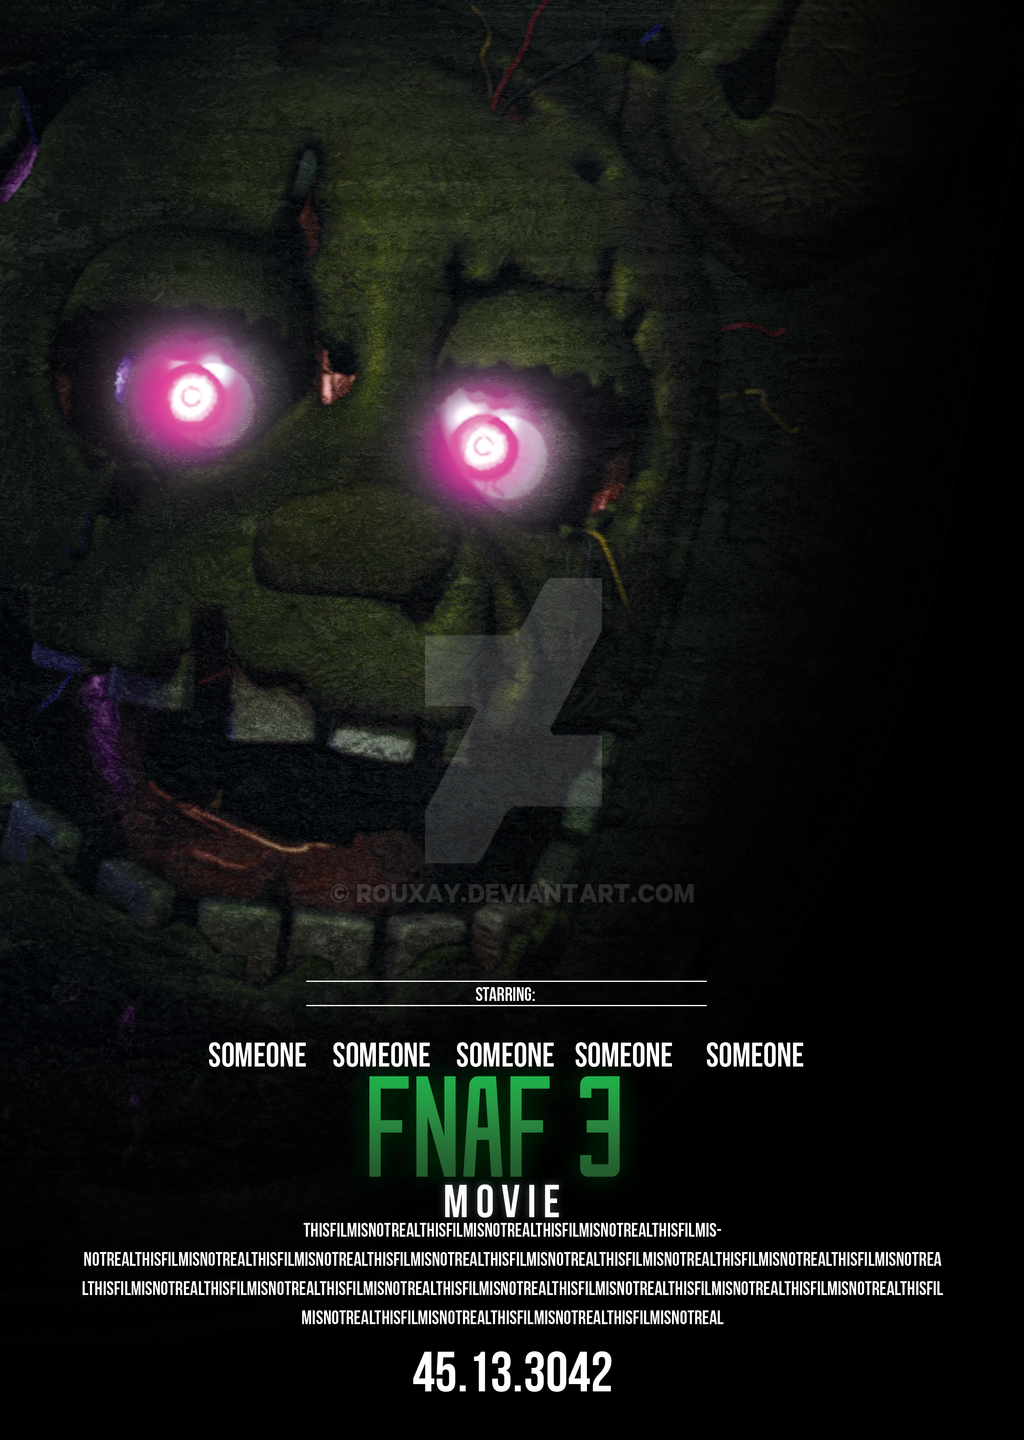 fnaf movie fanmade official on fivenightsatfreddys